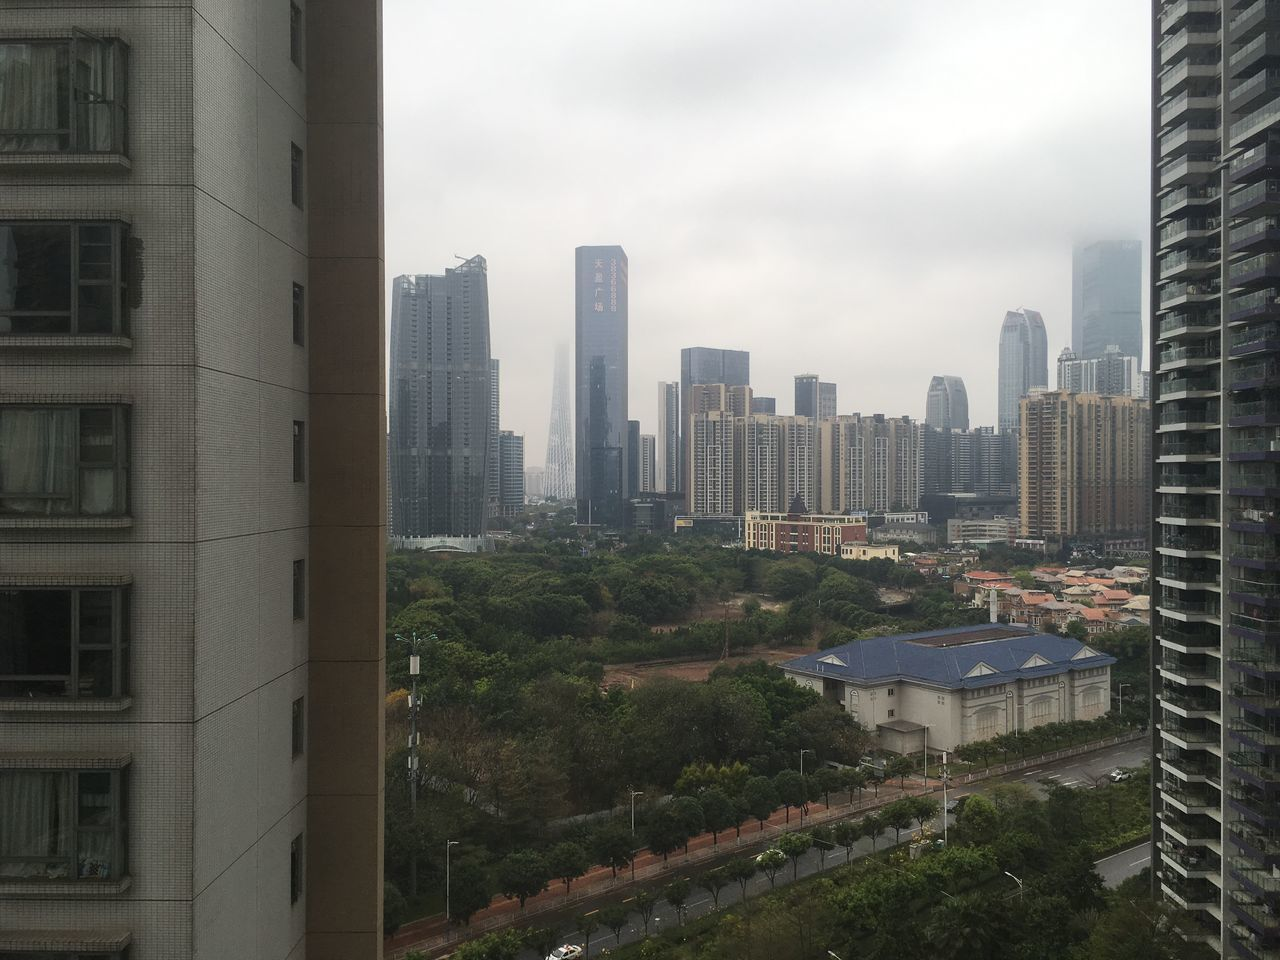 Architecture Building Building Exterior Built Structure City Cityscape Cloud - Sky Day Guangzhou Modern No People Outdoors Sky Skyscraper Tree Urban Skyline